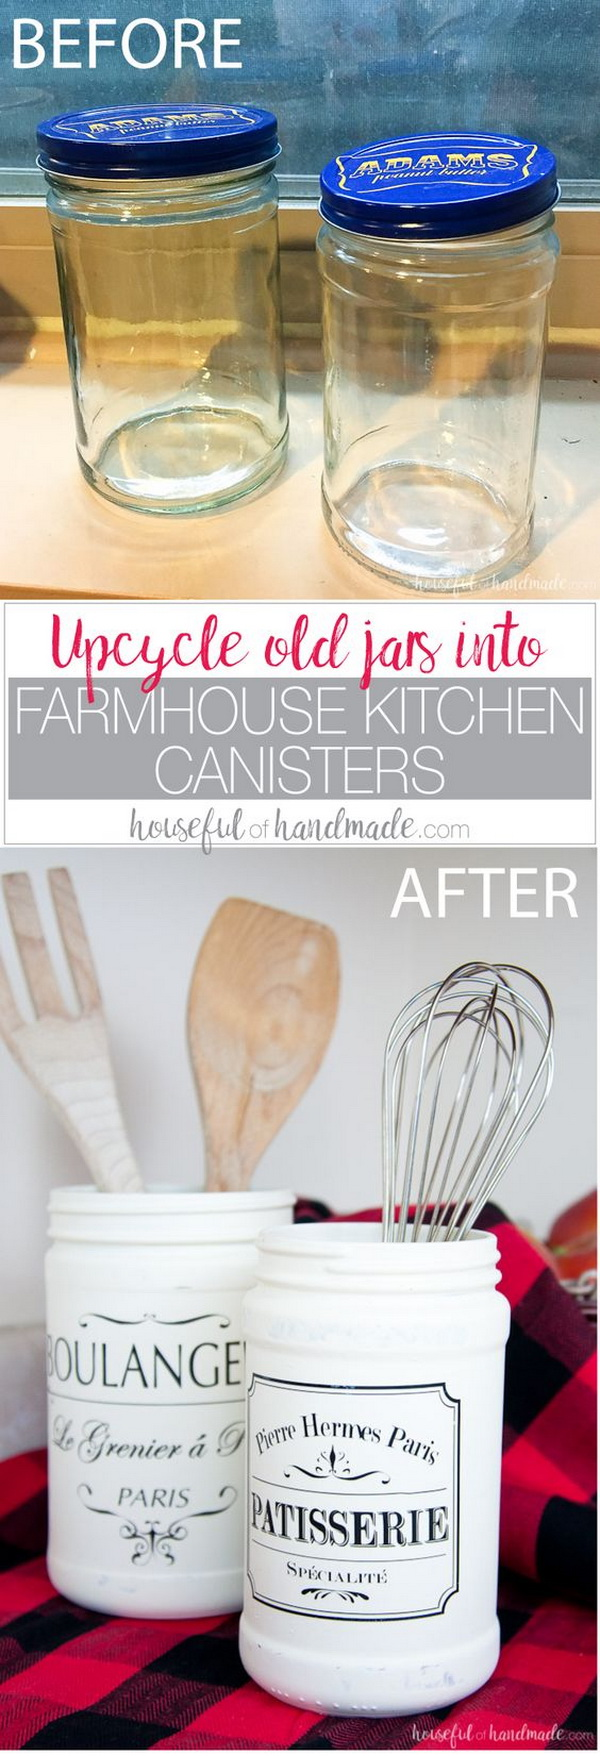 DIY Farmhouse Kitchen Canister from Mason Jars.